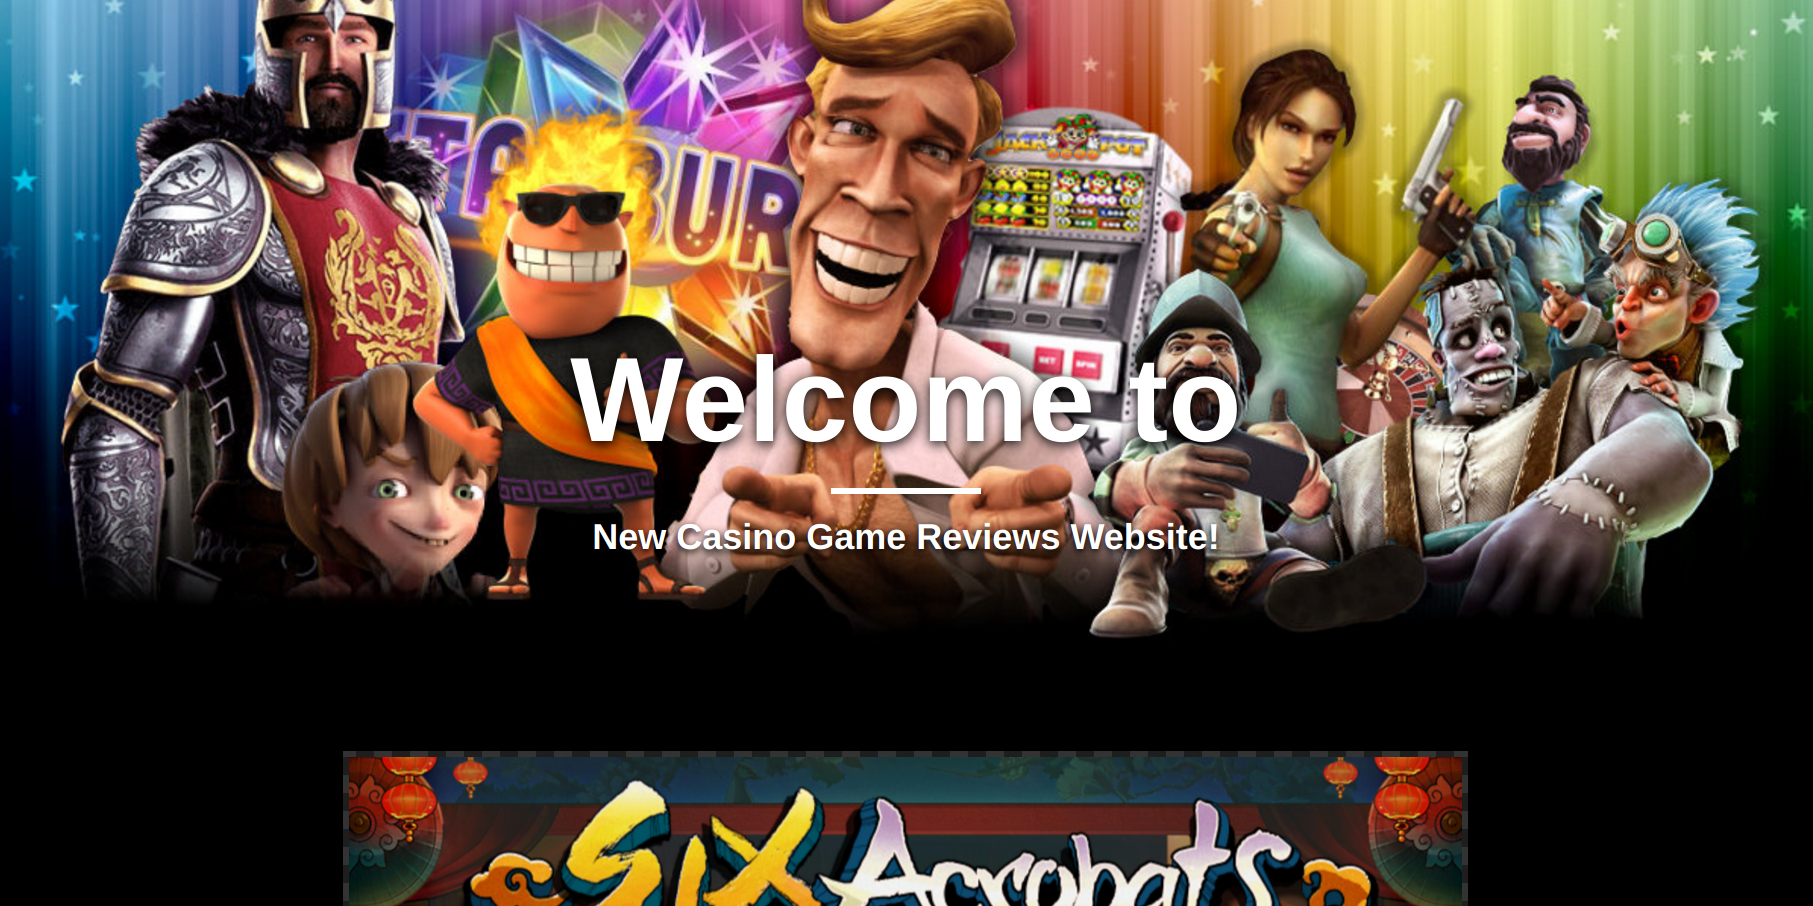 casinogamereviews.com